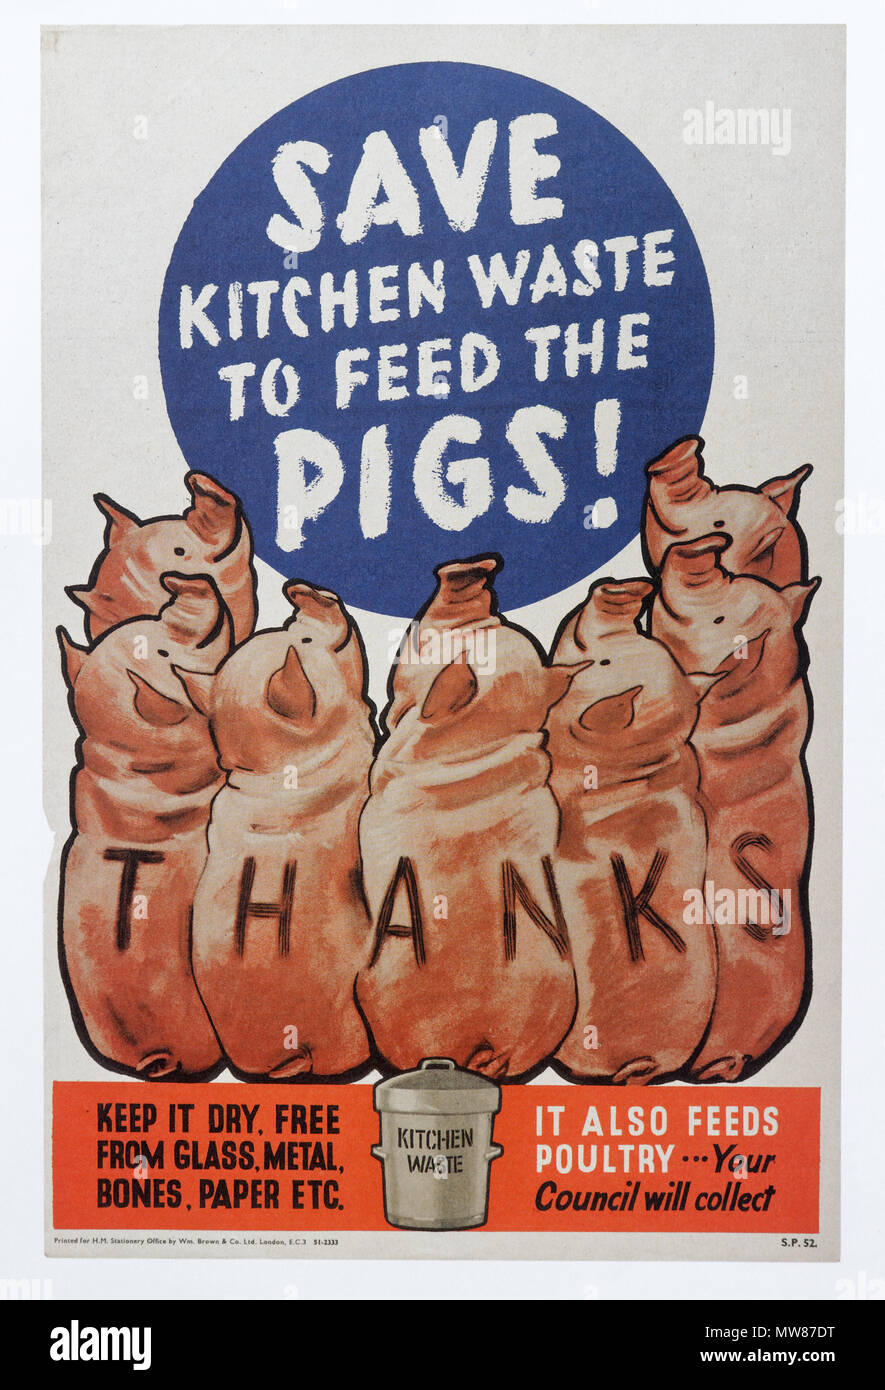 A second world war poster encouraging people to save waste food to feed pigs - SAve Kitchen Waste to Feed the Pigs - Stock Image